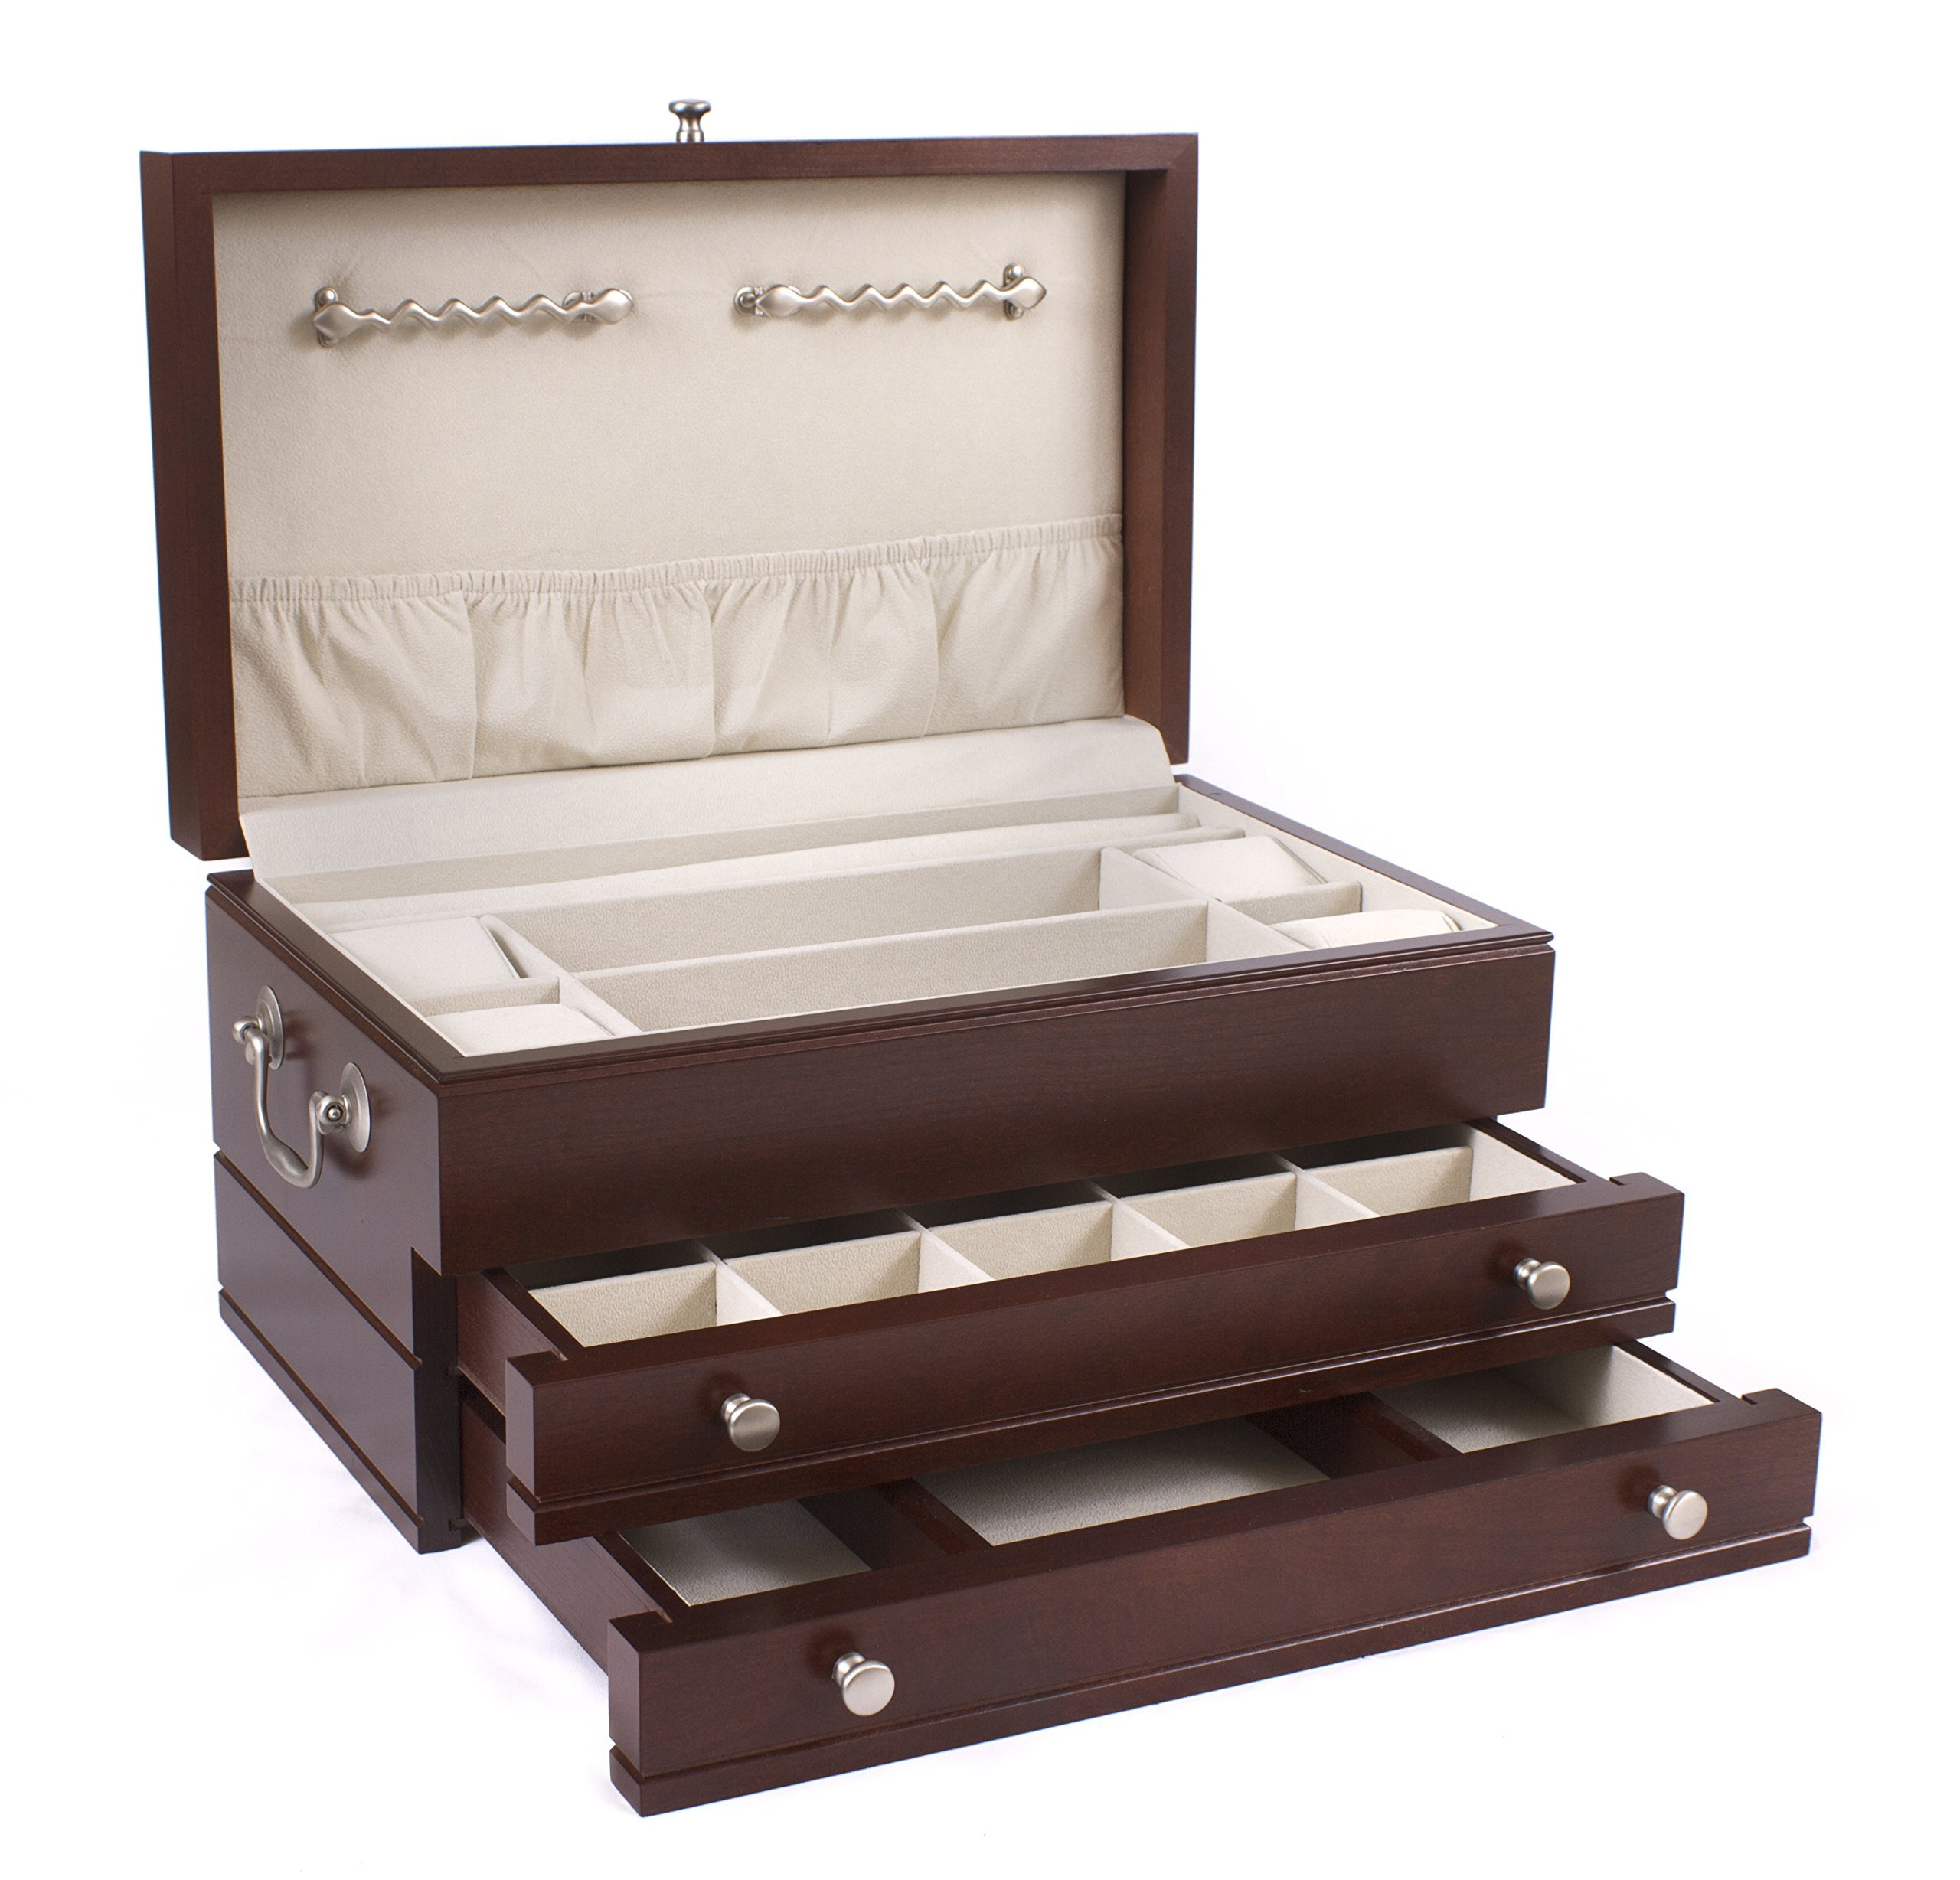 American Chest First Lady, 2-Drawer, Solid Cherry Jewelry Box; MADE in USA by American Chest